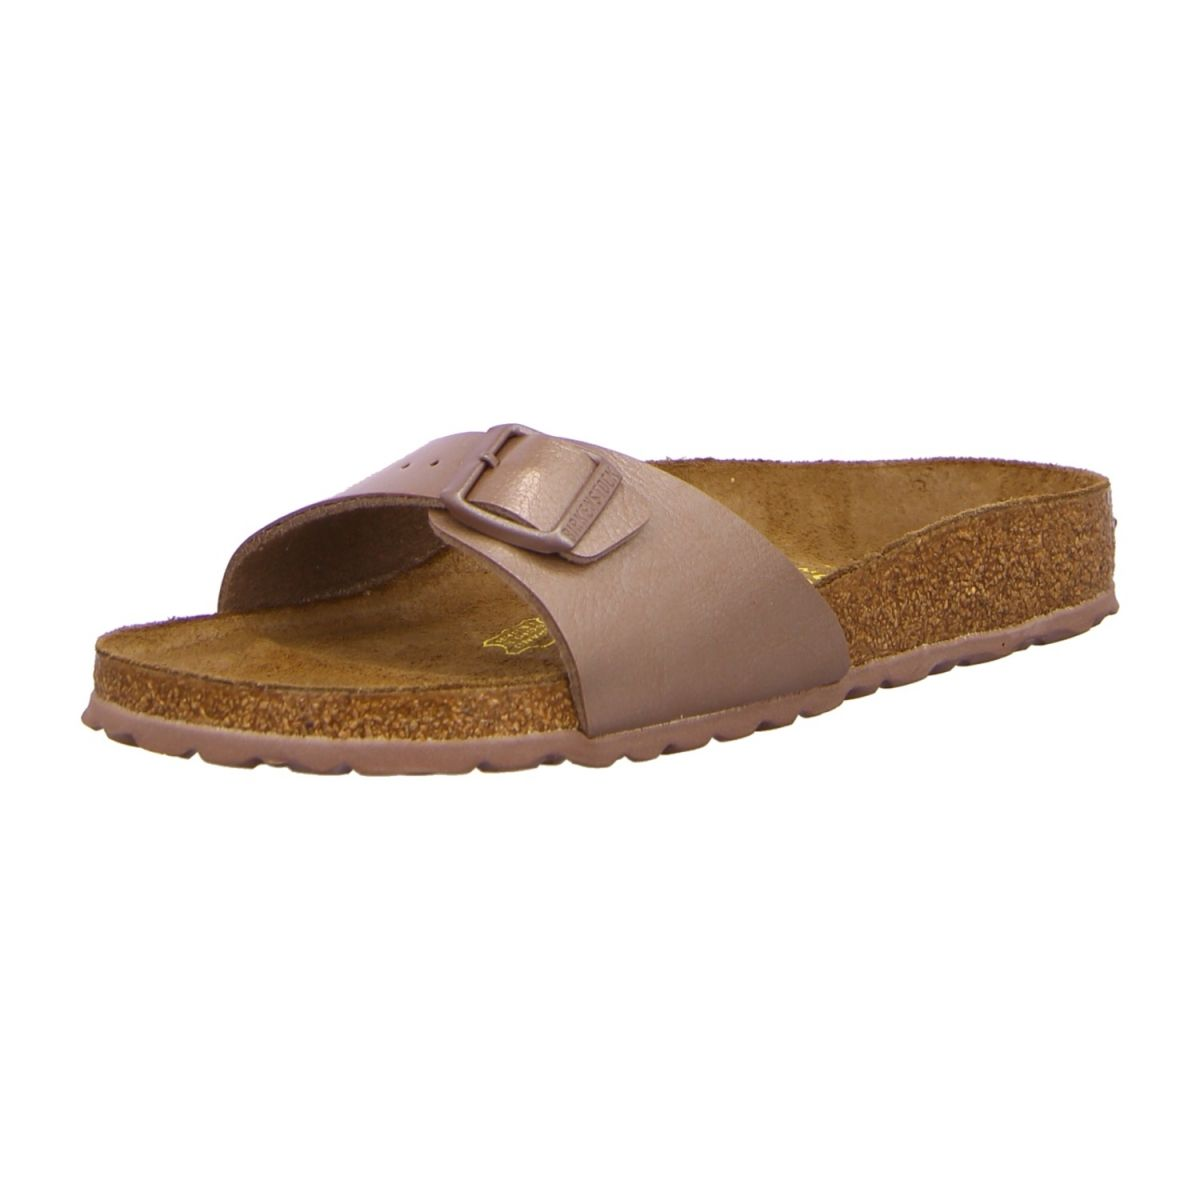 NEU: Birkenstock Pantoletten Madrid 439753 graceful